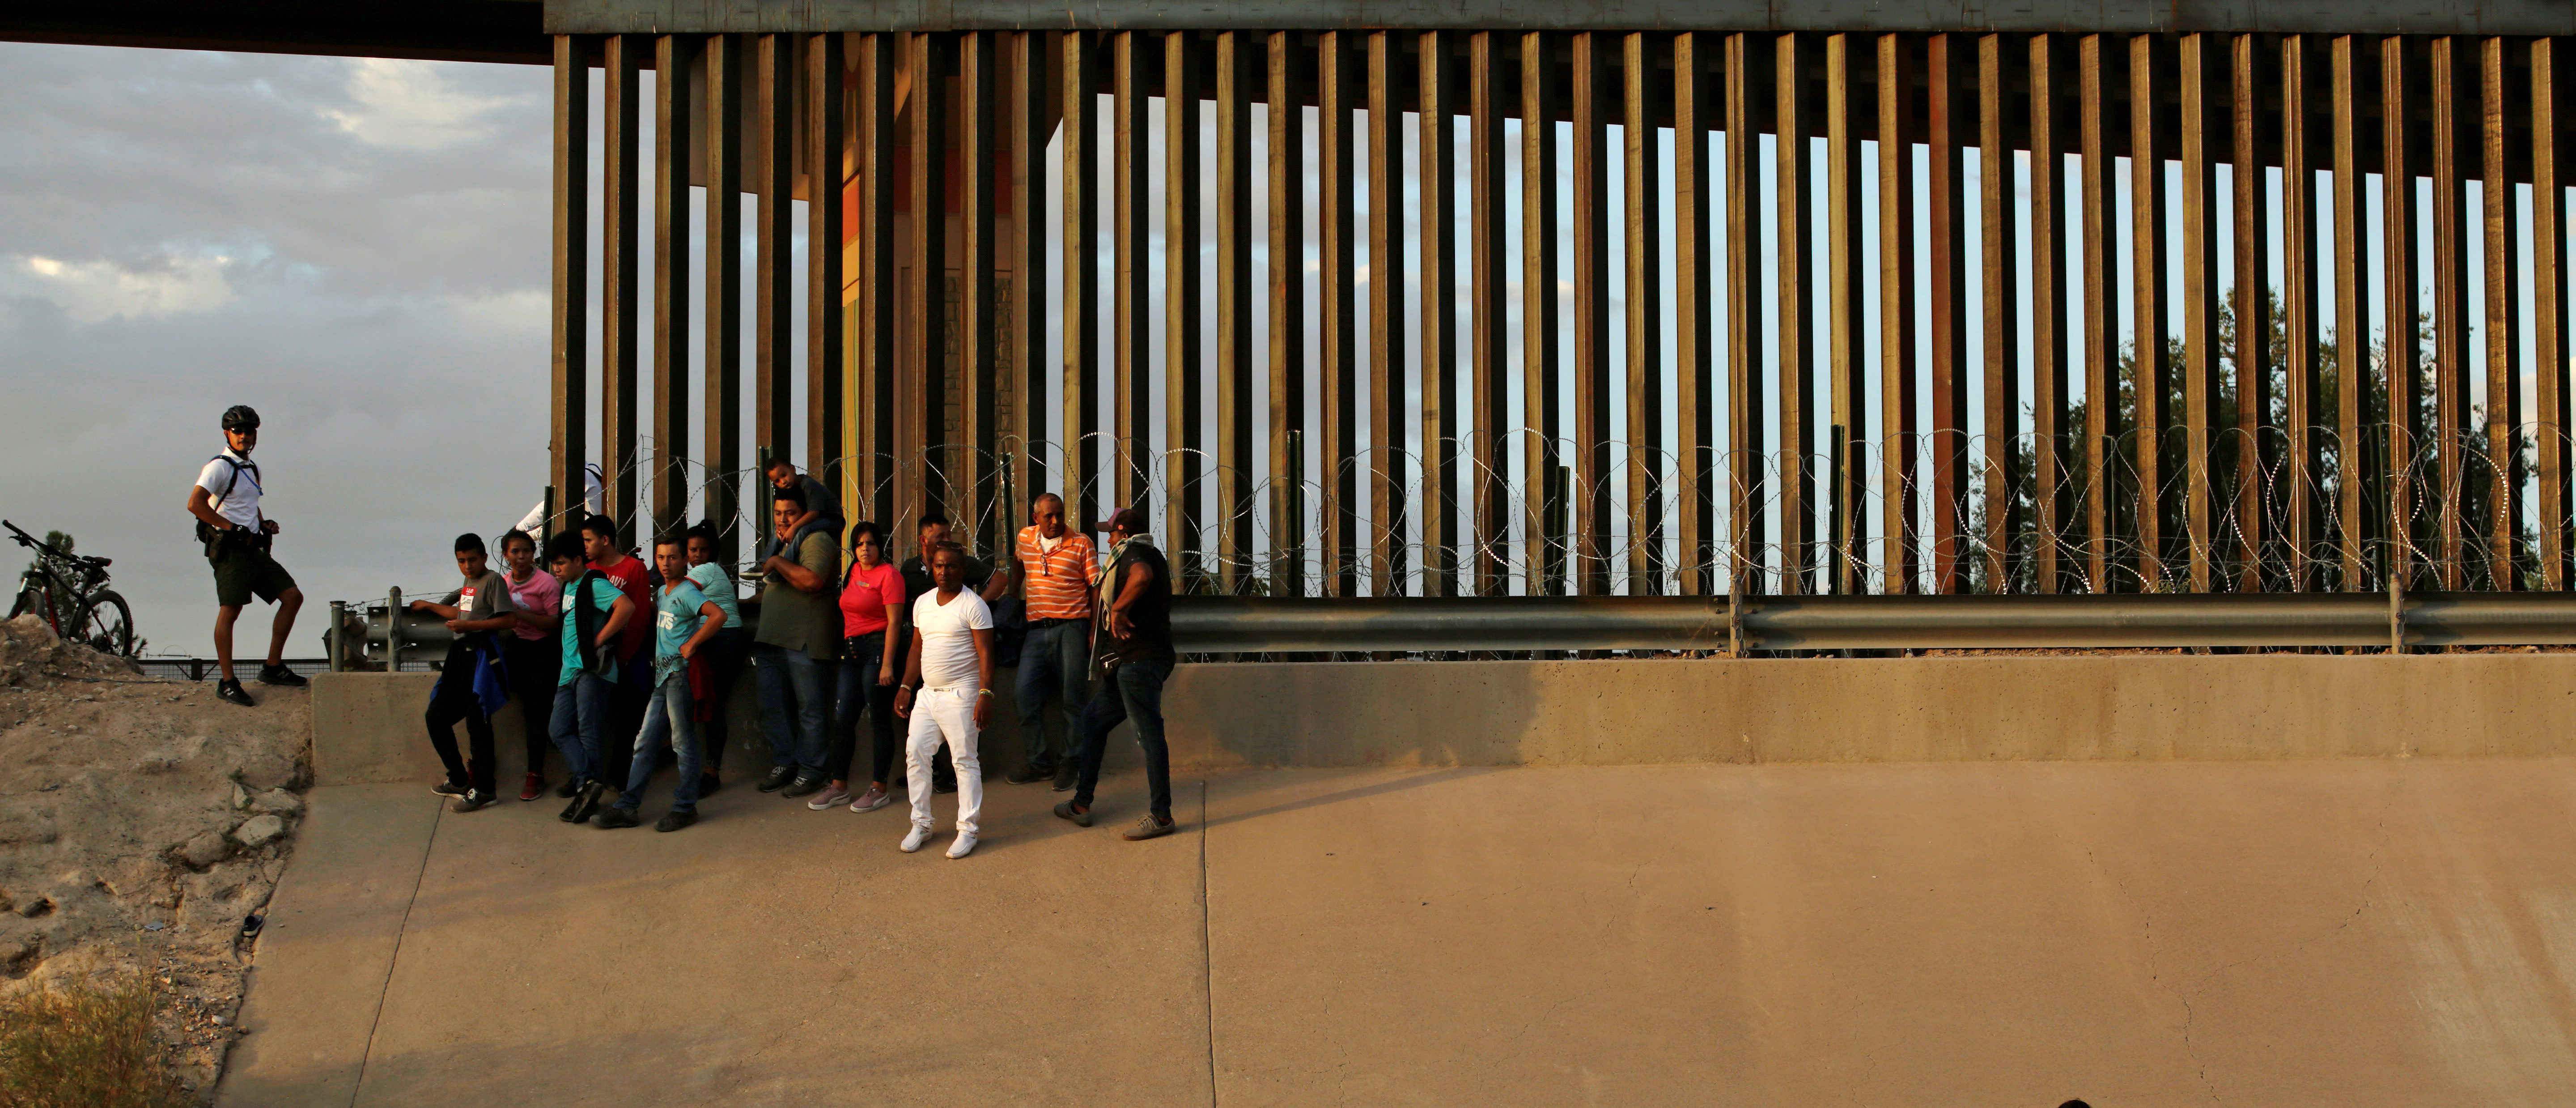 Majority Of Americans Want Border Security-DACA Deal, Poll Finds